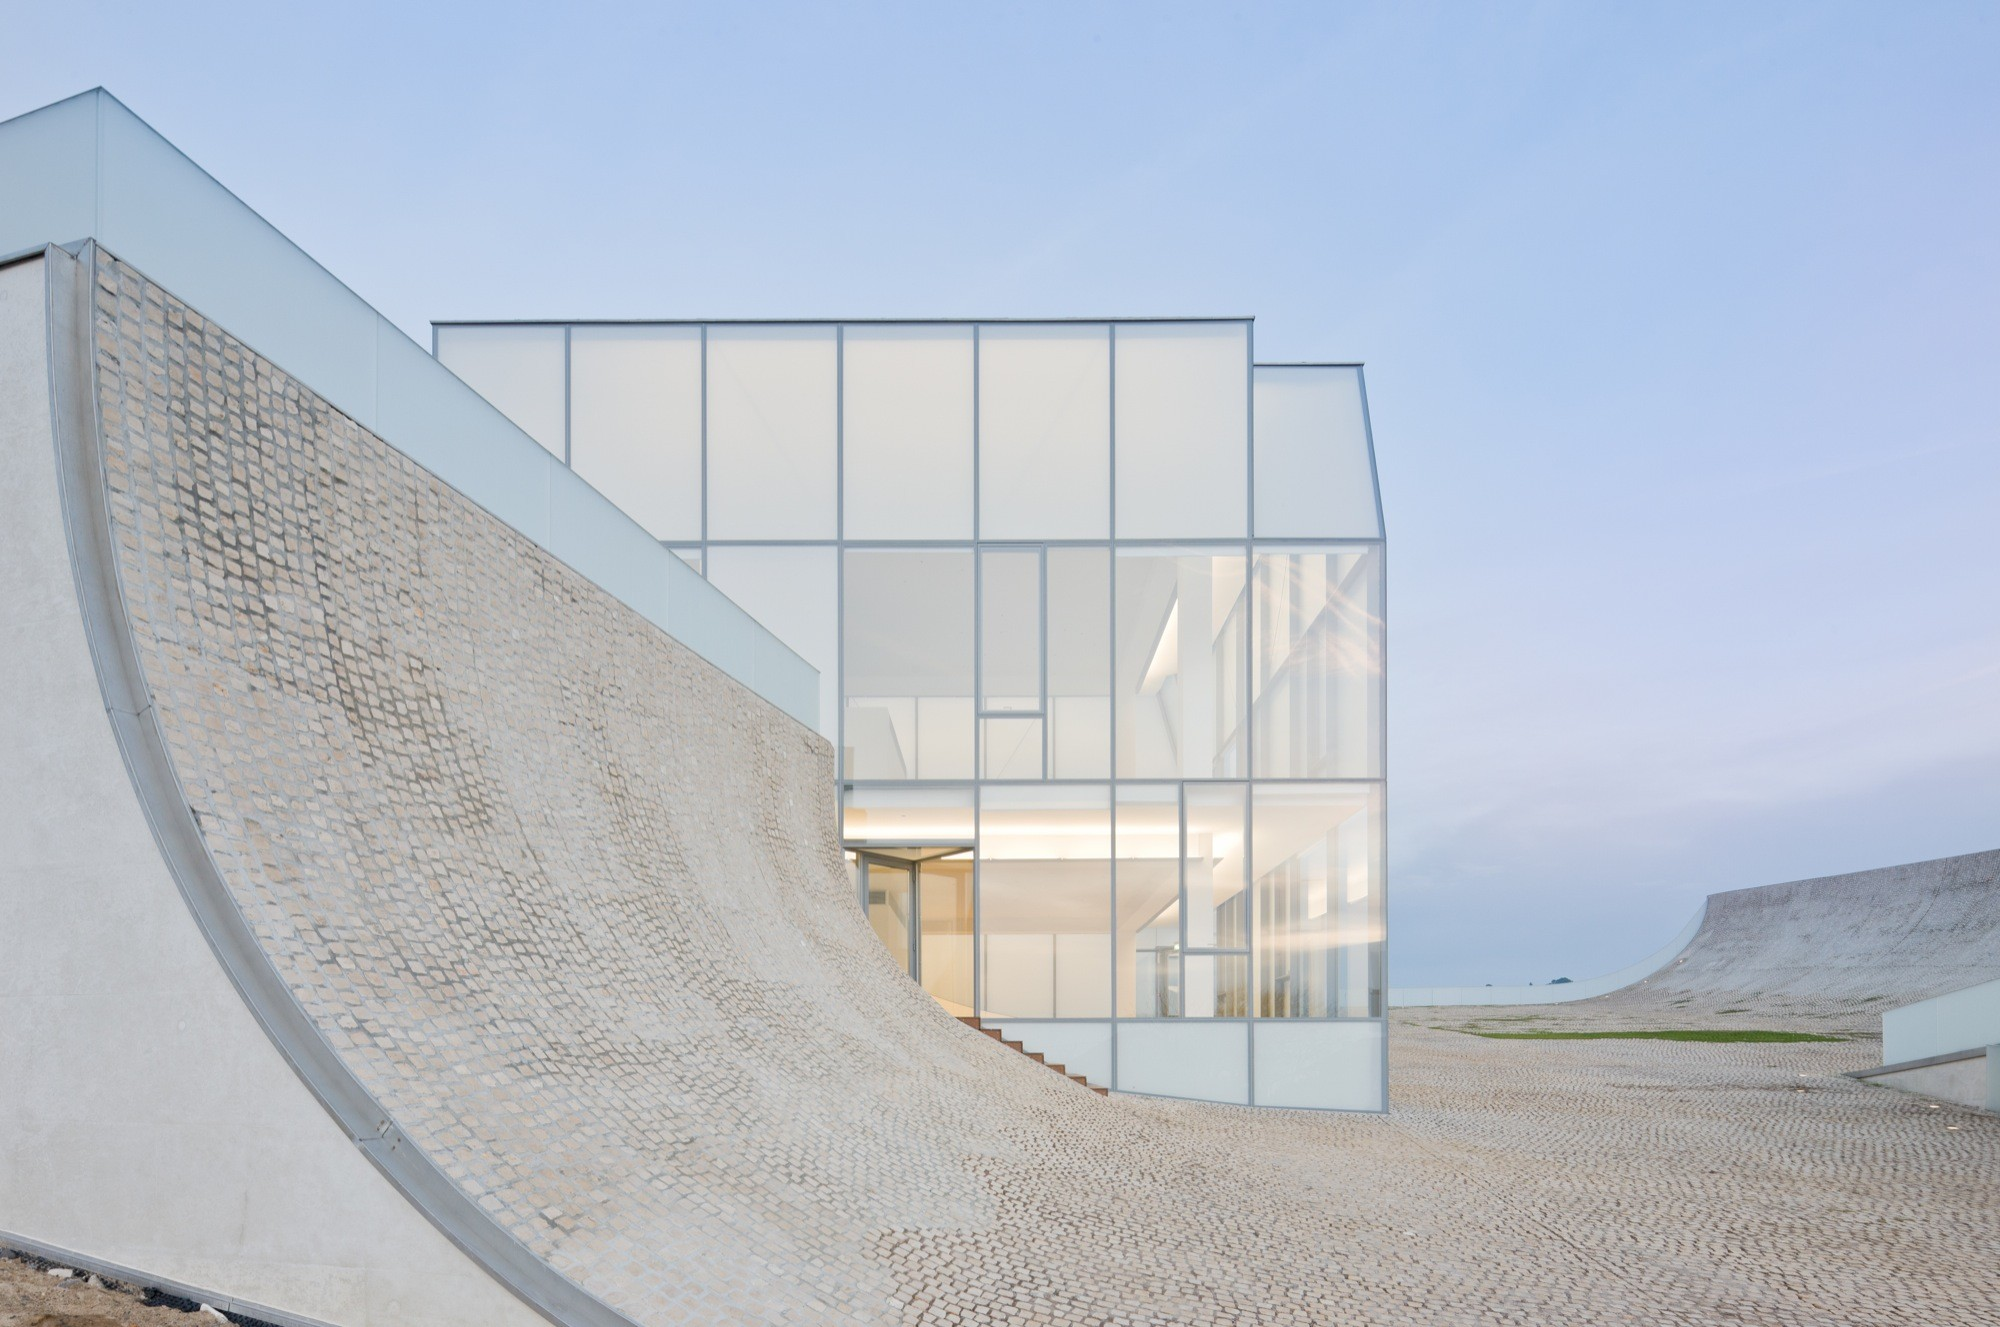 Museum of ocean and surf steven holl architects for L architecture